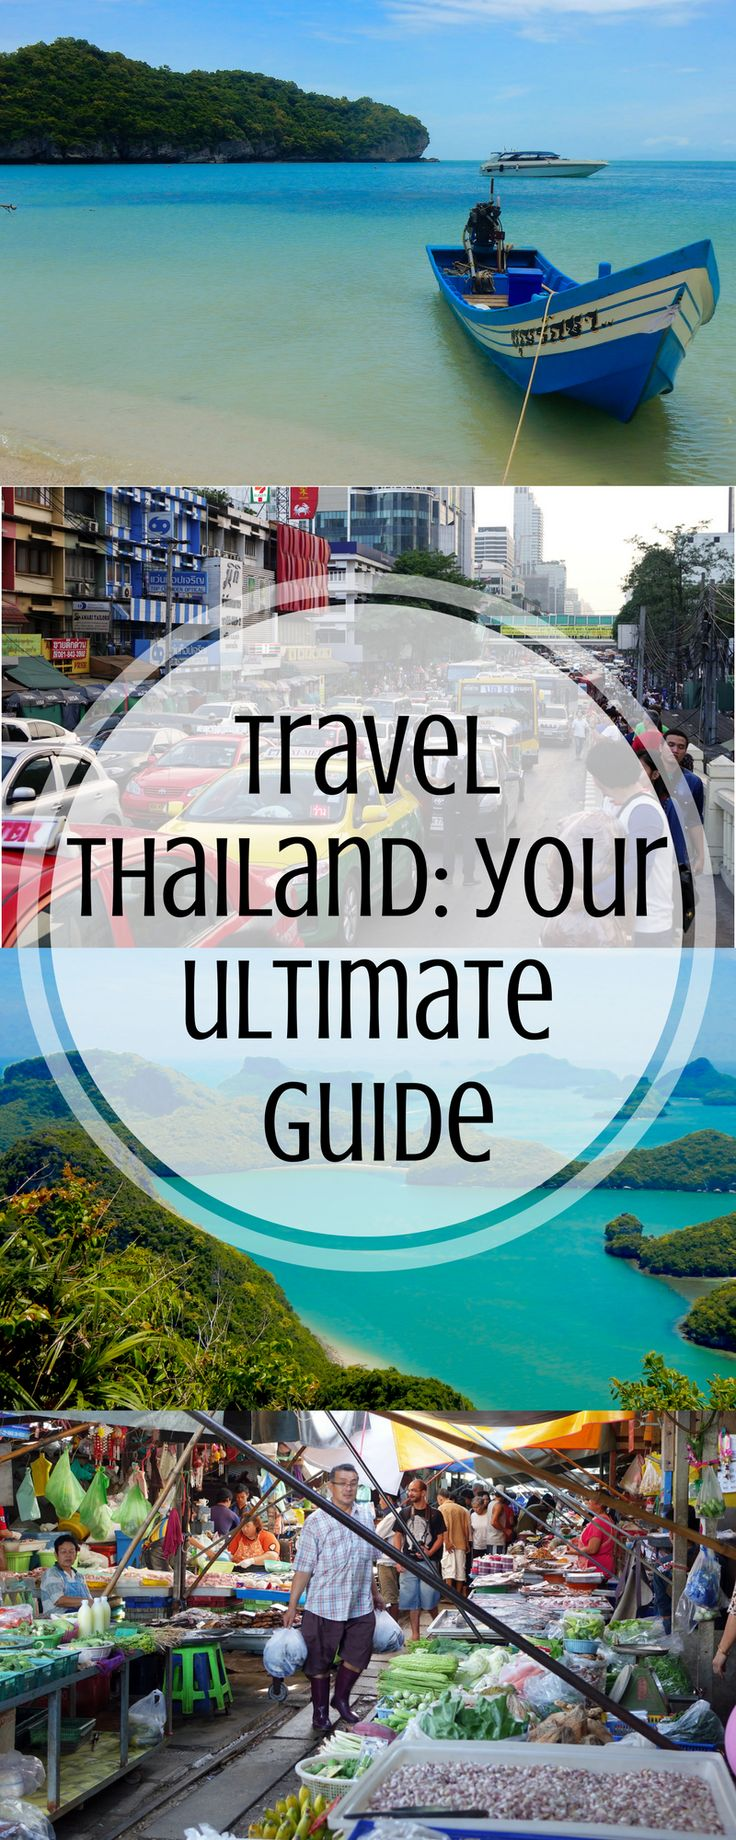 With so much to see and do, knowing how to travel Thailand before you go is crucial to making sure you get the most out of your trip. So here is the what to do, where to go, and how to budget while you travel Thailand!  via @gayglobetrotter